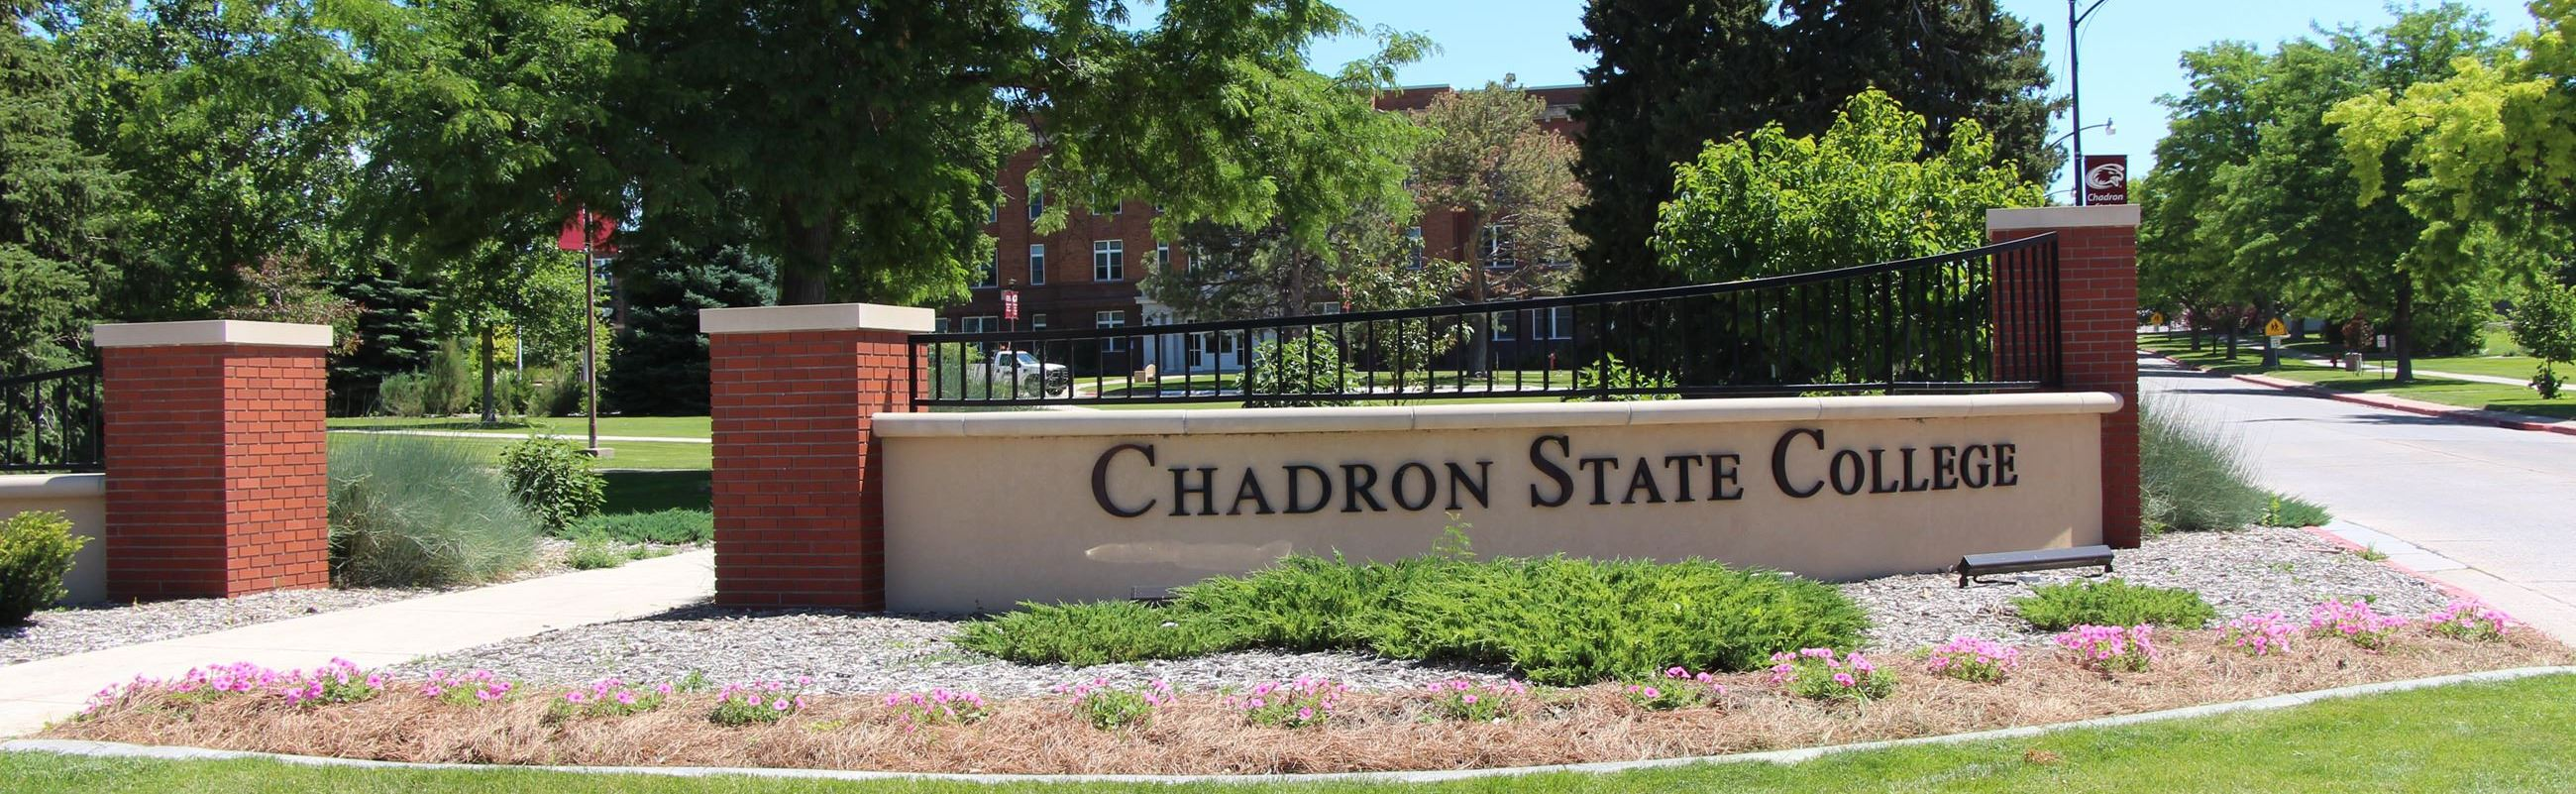 Chadron State College Welcome Sign